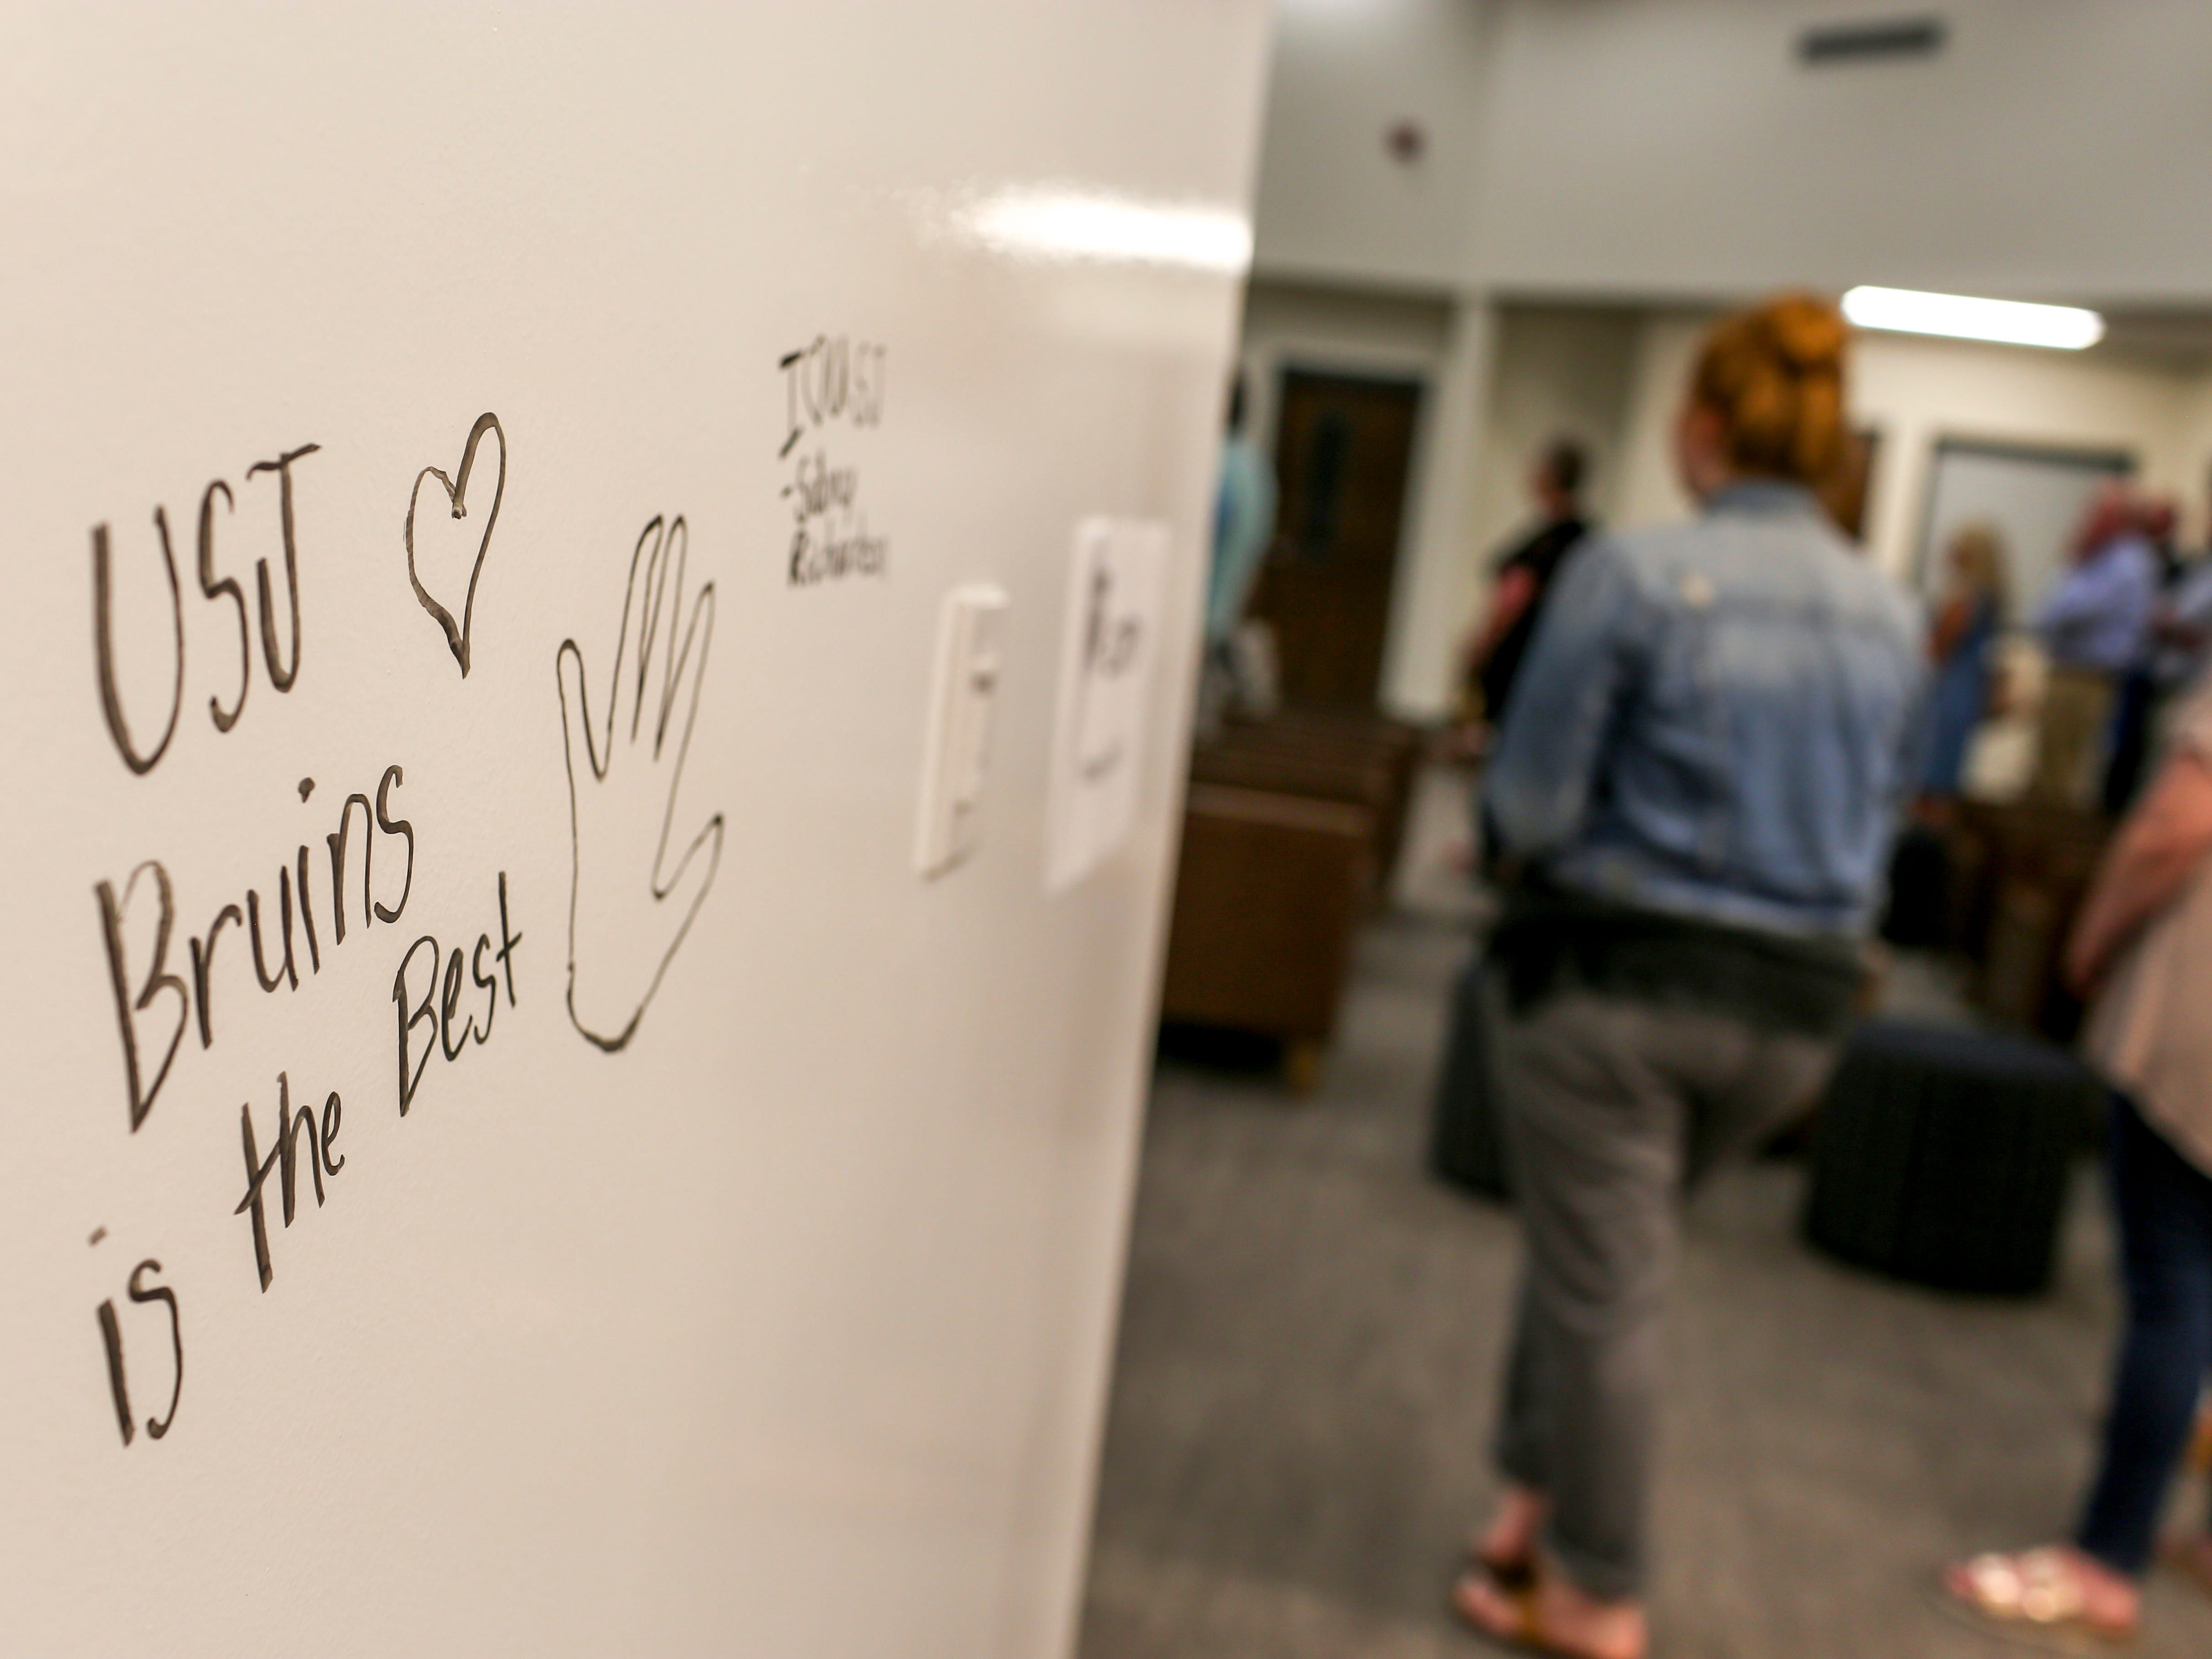 Writing on the wall borders the area where a new library is announced at University School of Jackson in Jackson, Tenn., on Monday, Aug. 20, 2018.